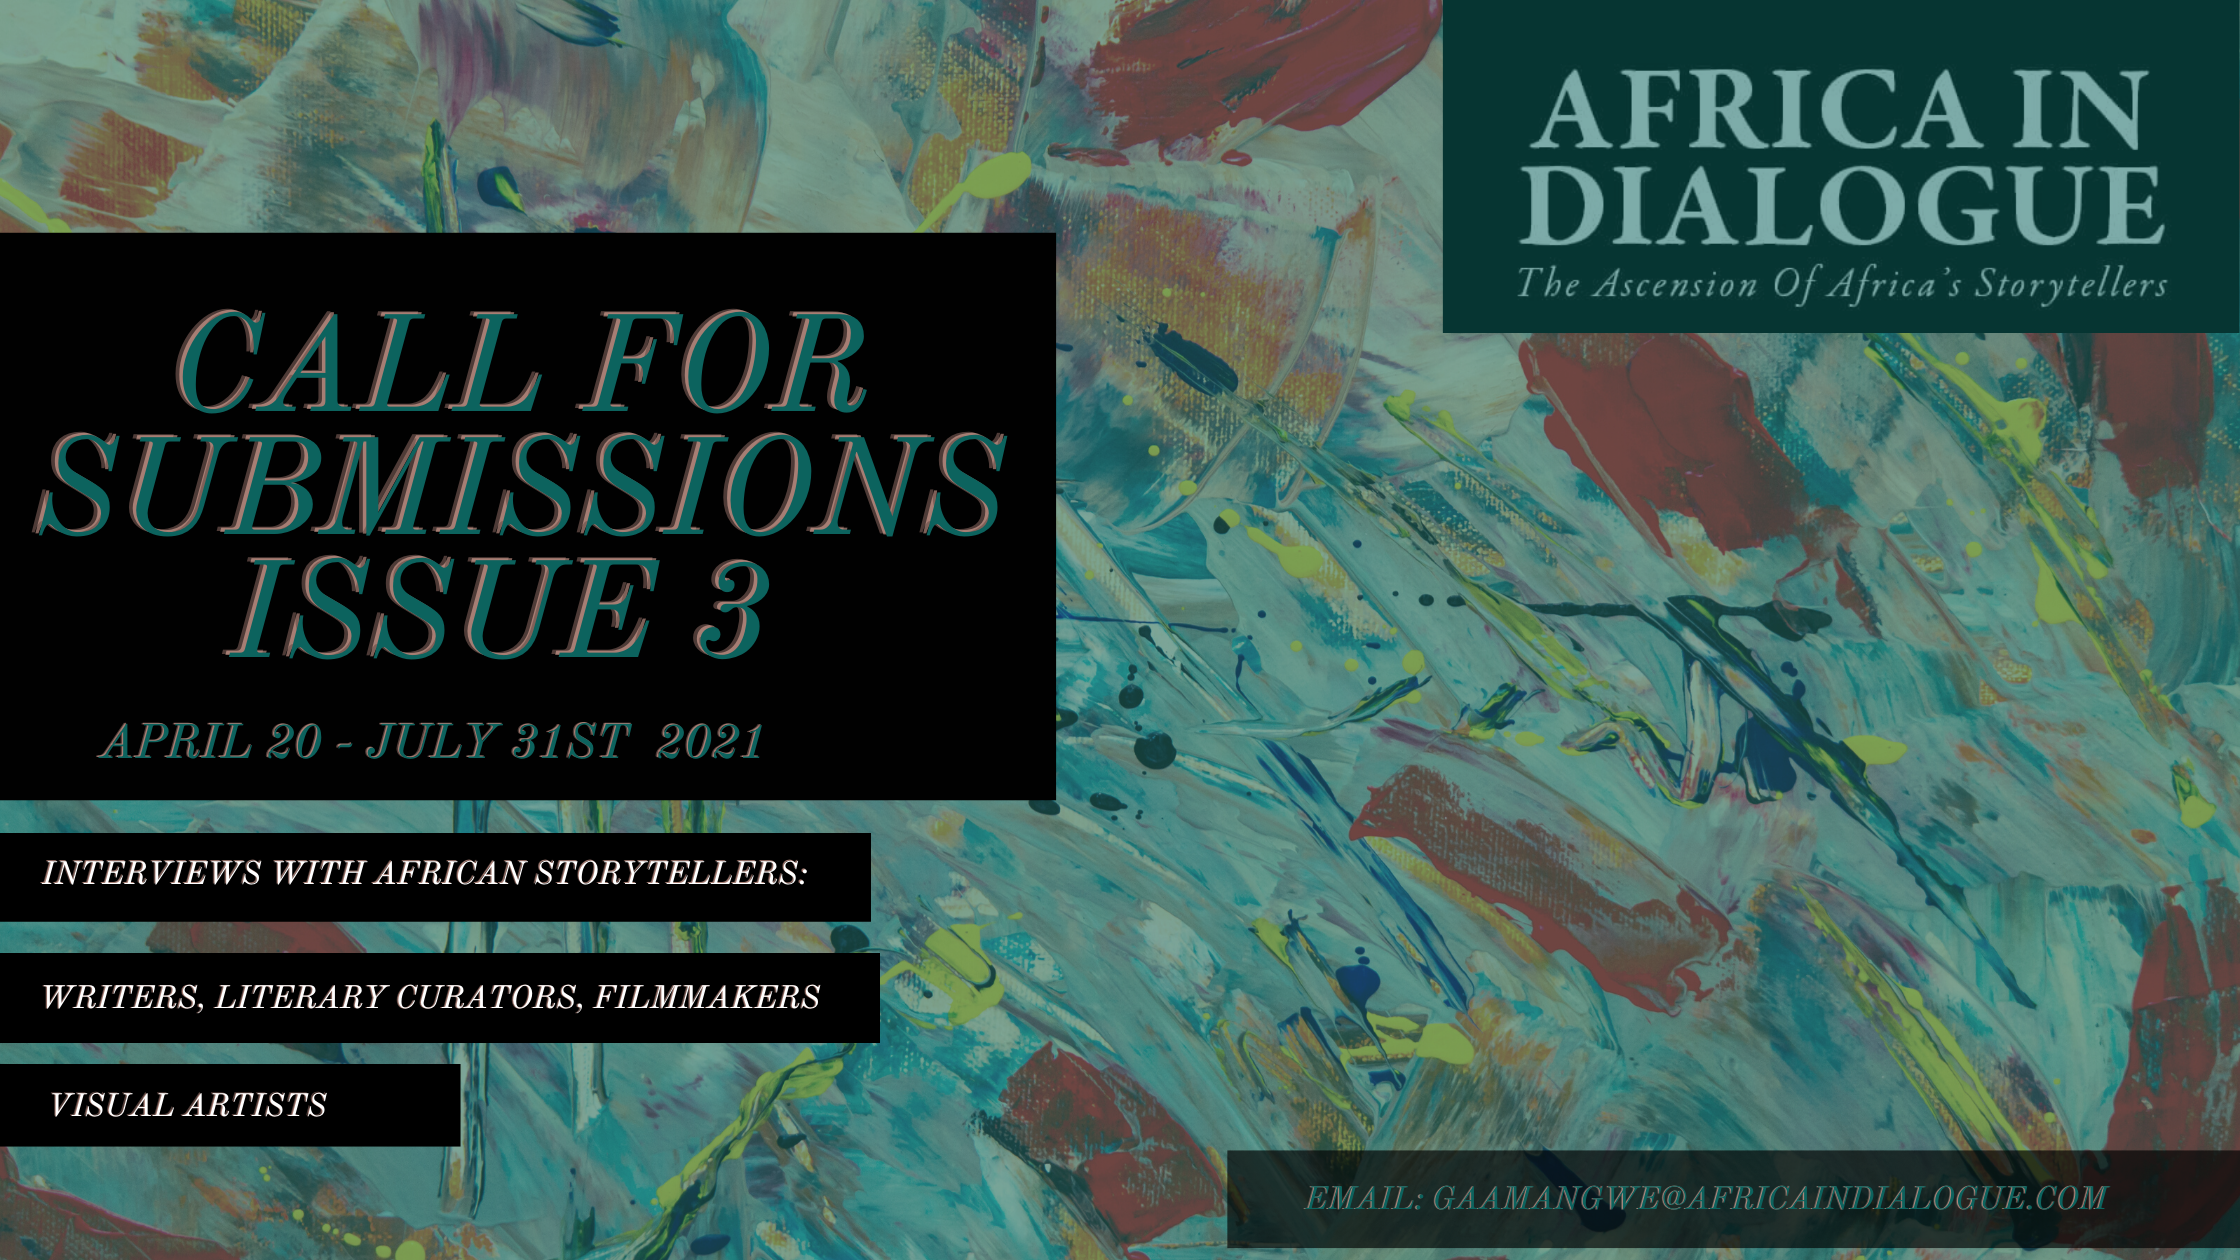 Africa in Dialogue Issue 3 - Call For Submissions